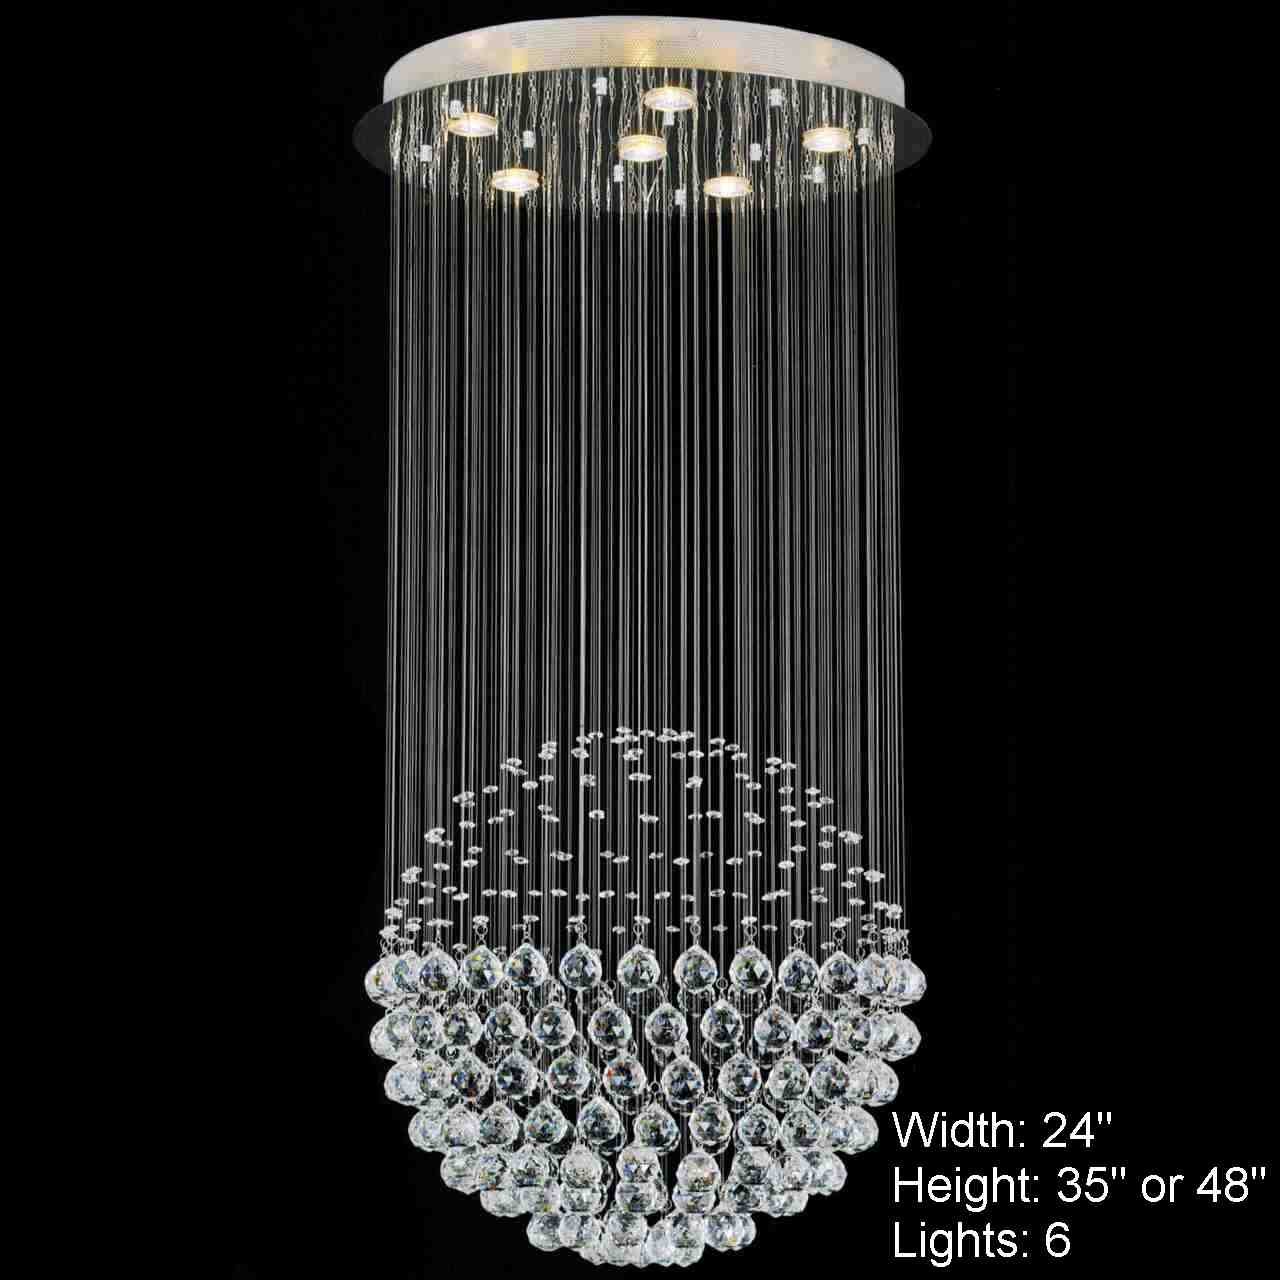 Brizzo lighting stores sphere modern crystal chandelier for Modern lighting fixtures chandeliers